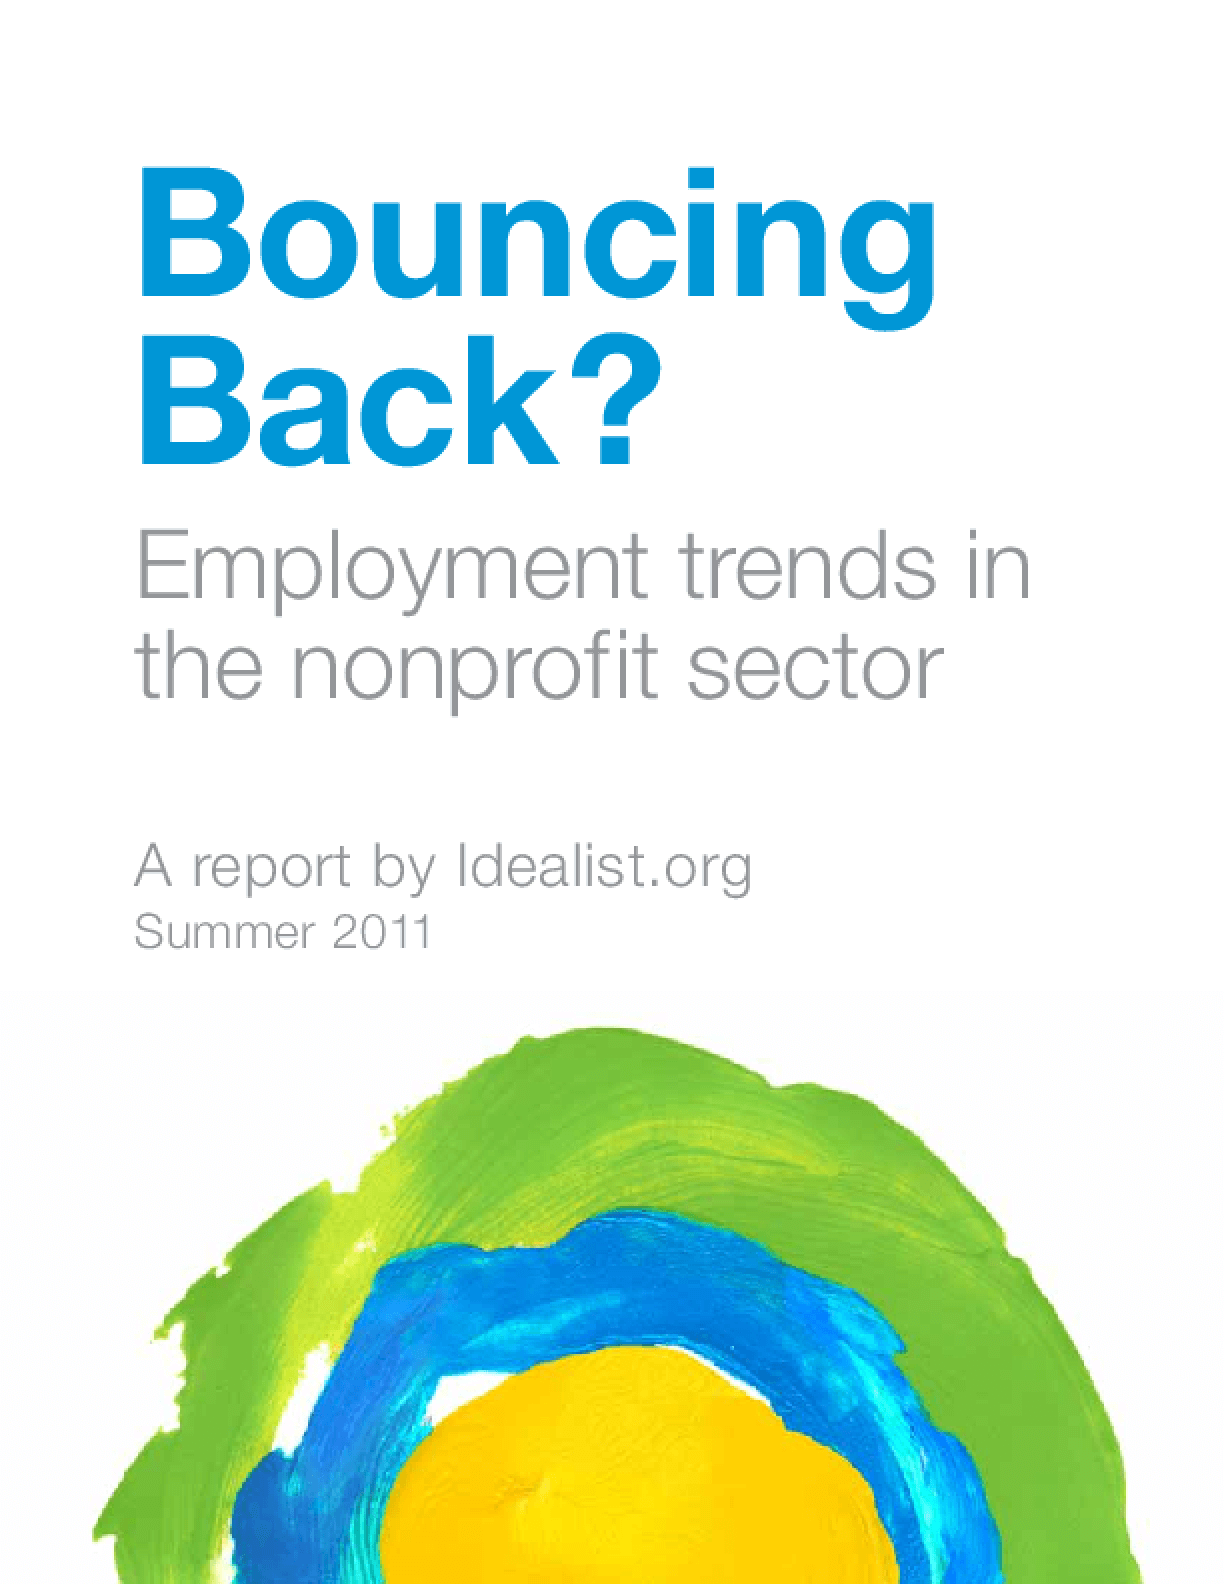 Bouncing Back? Employment Trends in the Nonprofit Sector